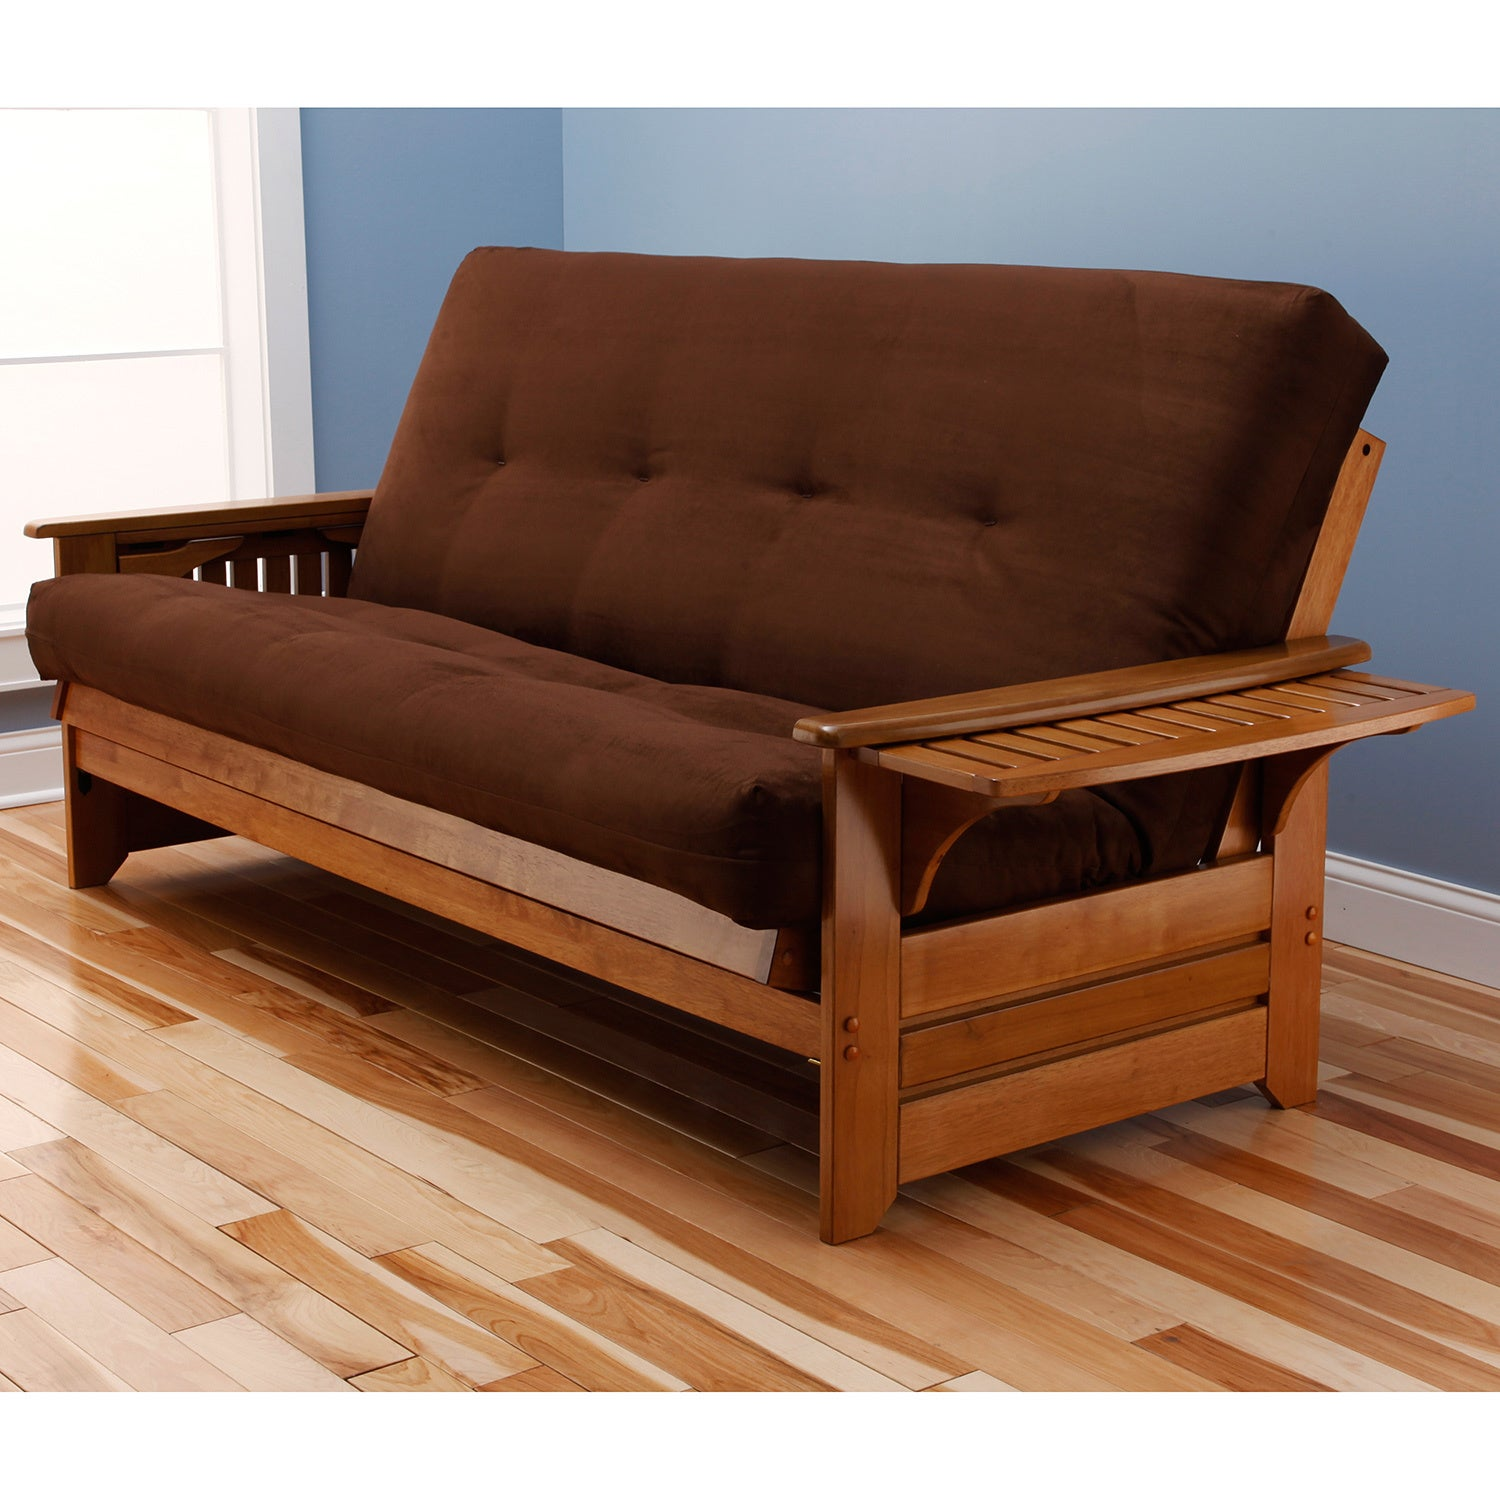 Havenside Home Okaloosa Honey Oak Full Size Wood Futon Frame With Innerspring Suede Mattress Free Shipping Today Com 8239187